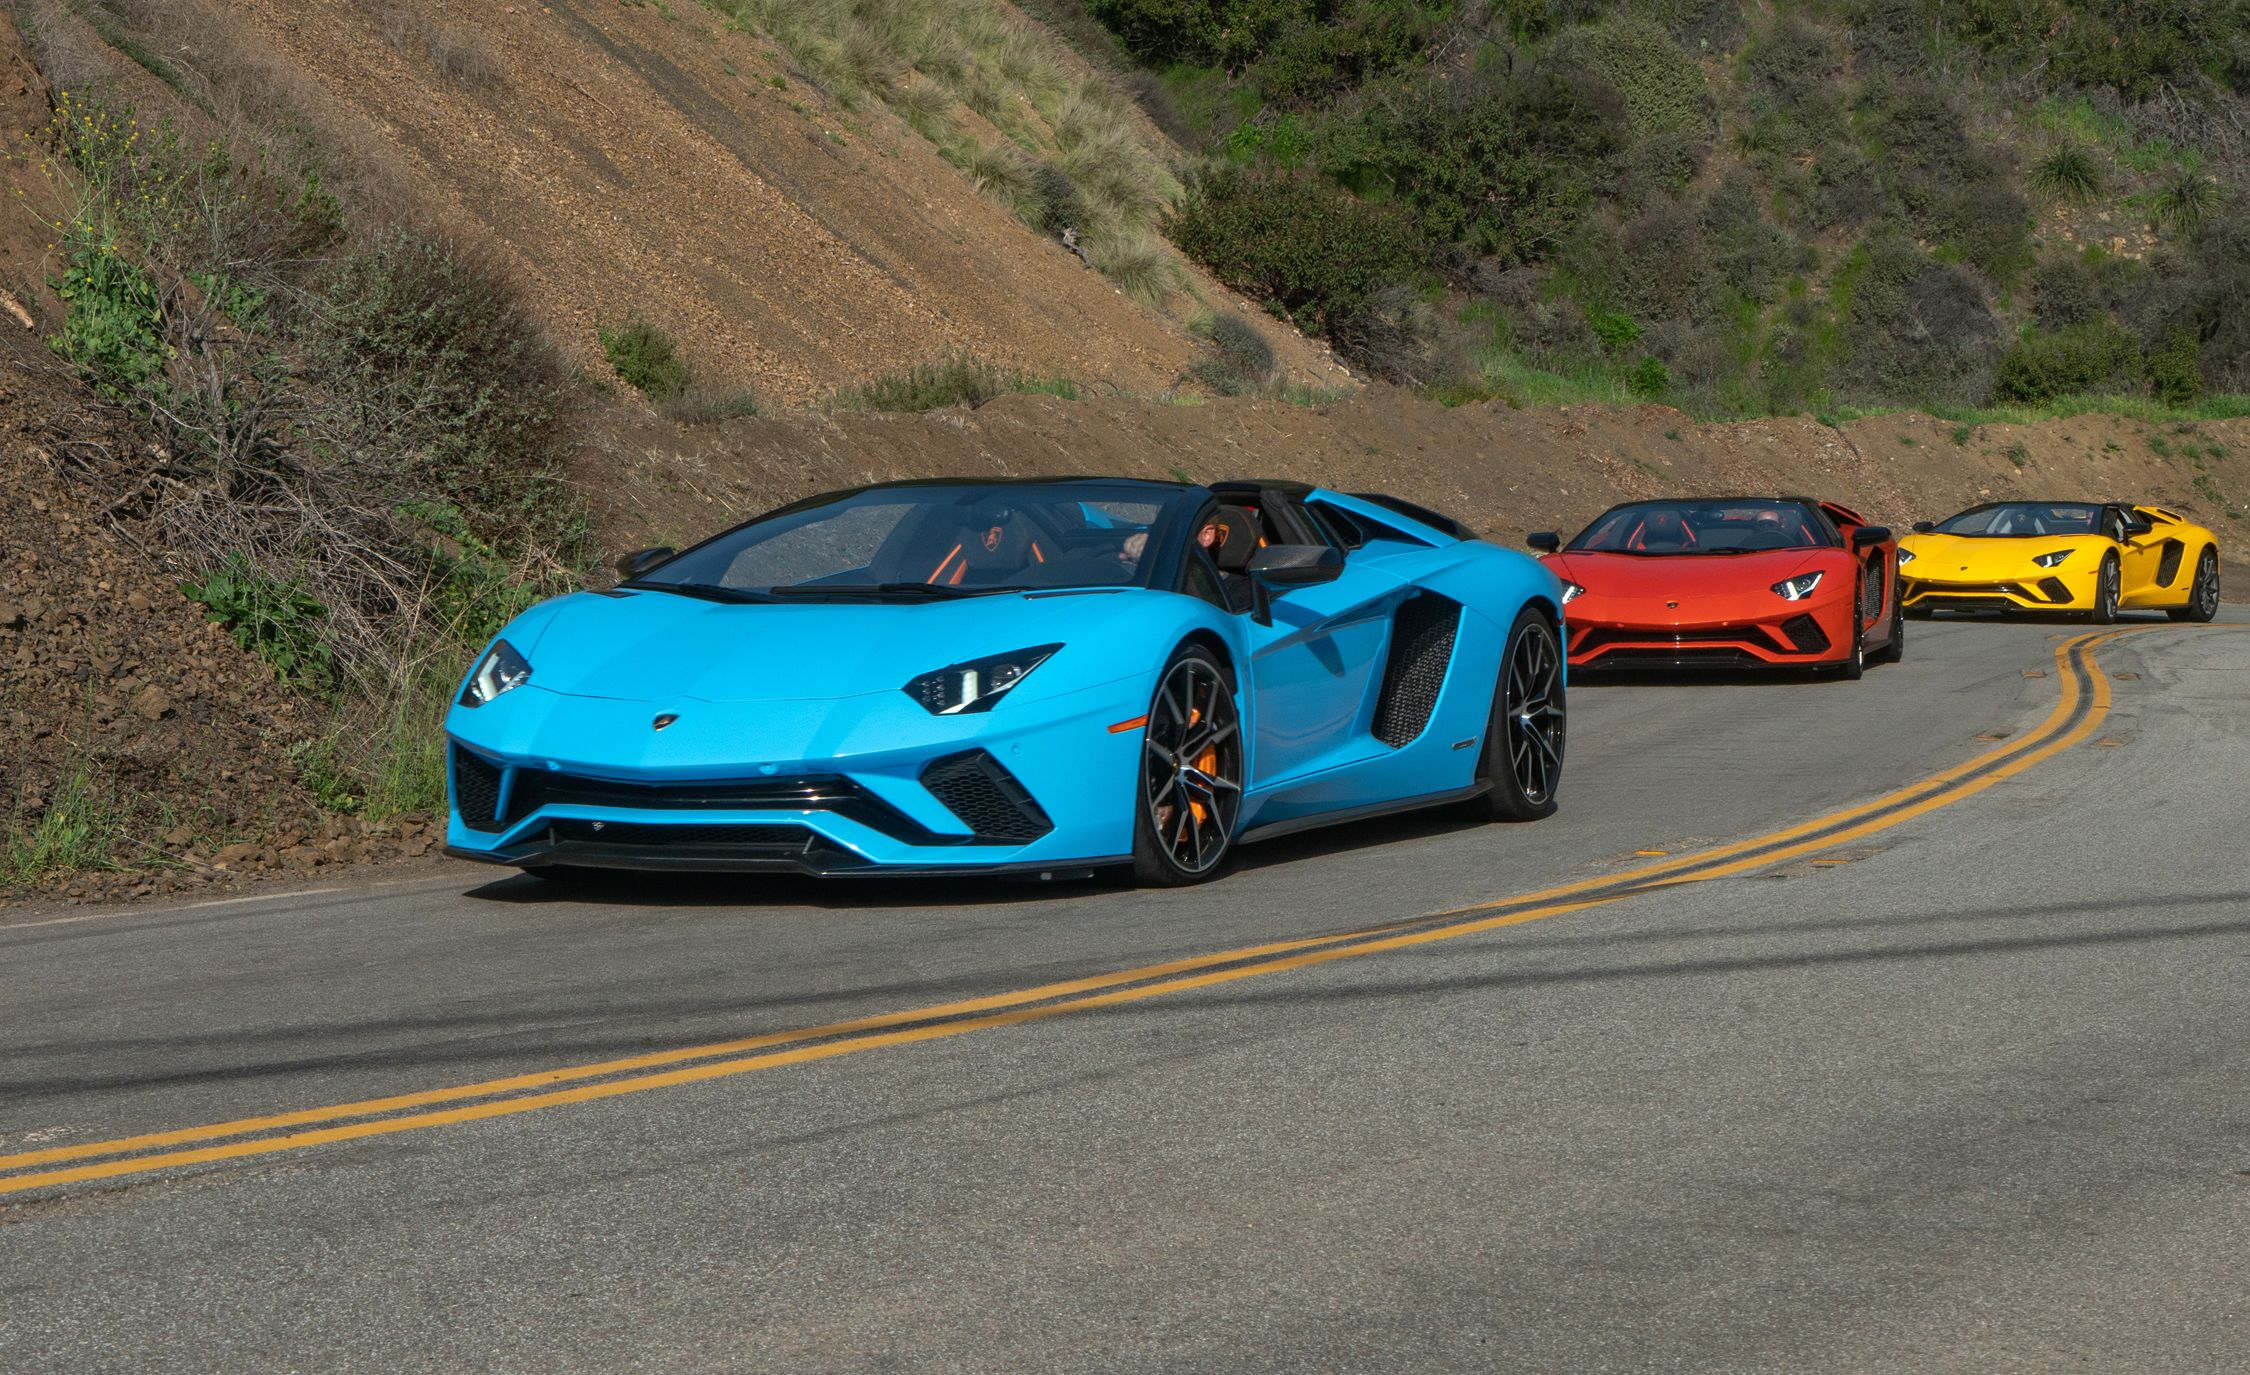 2018 Lamborghini Aventador S Roadster Driven You Can Run But You Can T Hide Review Car And